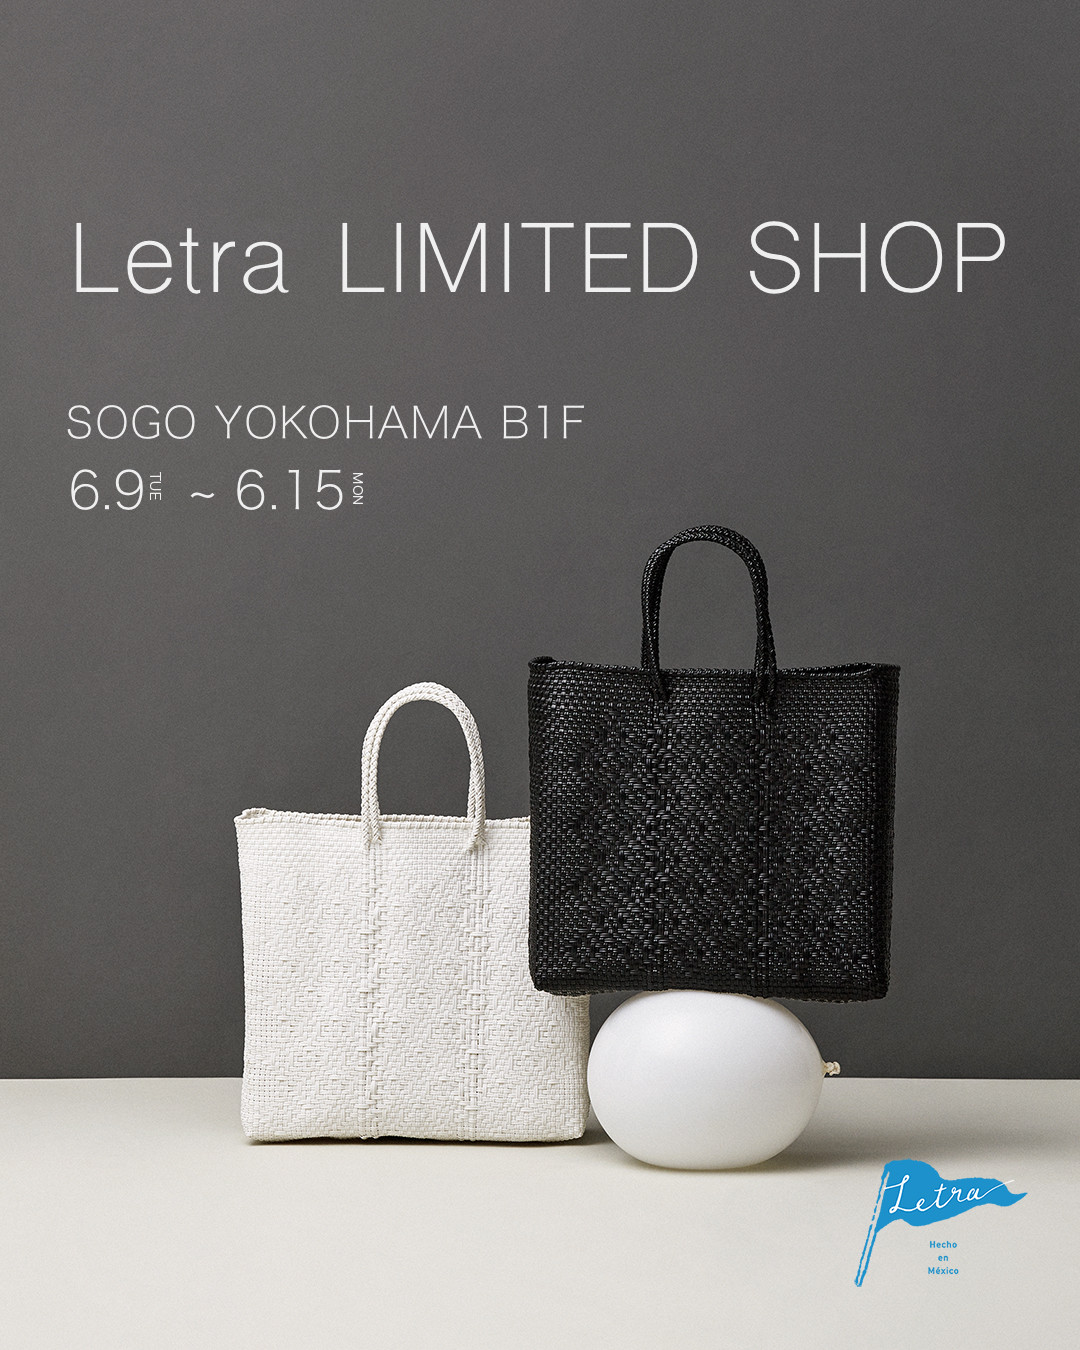 Letra Limited Shop そごう横浜 OPEN!